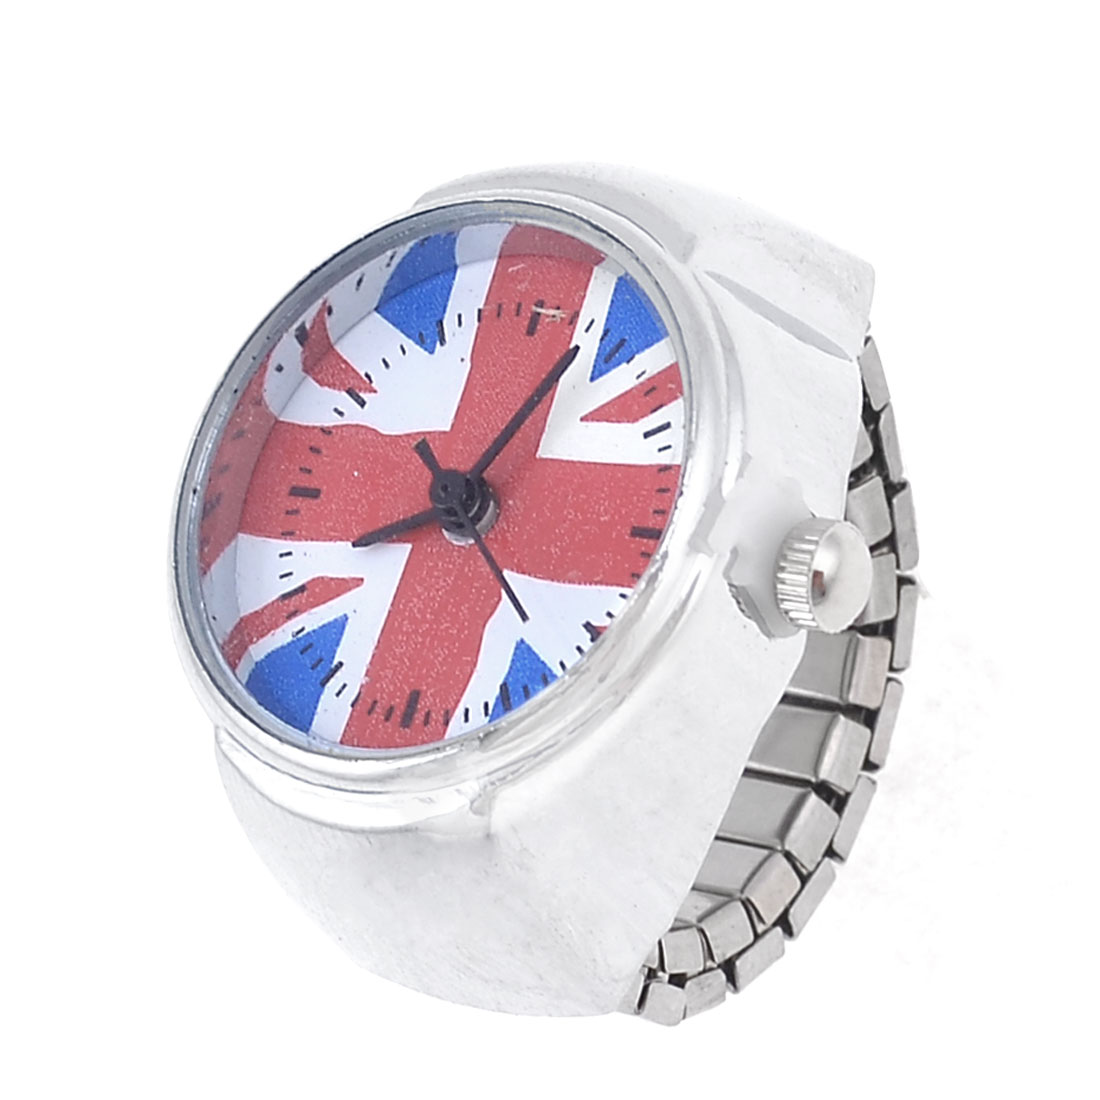 Stretch Band Round Case UK Flag Finger Ring Watch UK J 1/2 for Lady